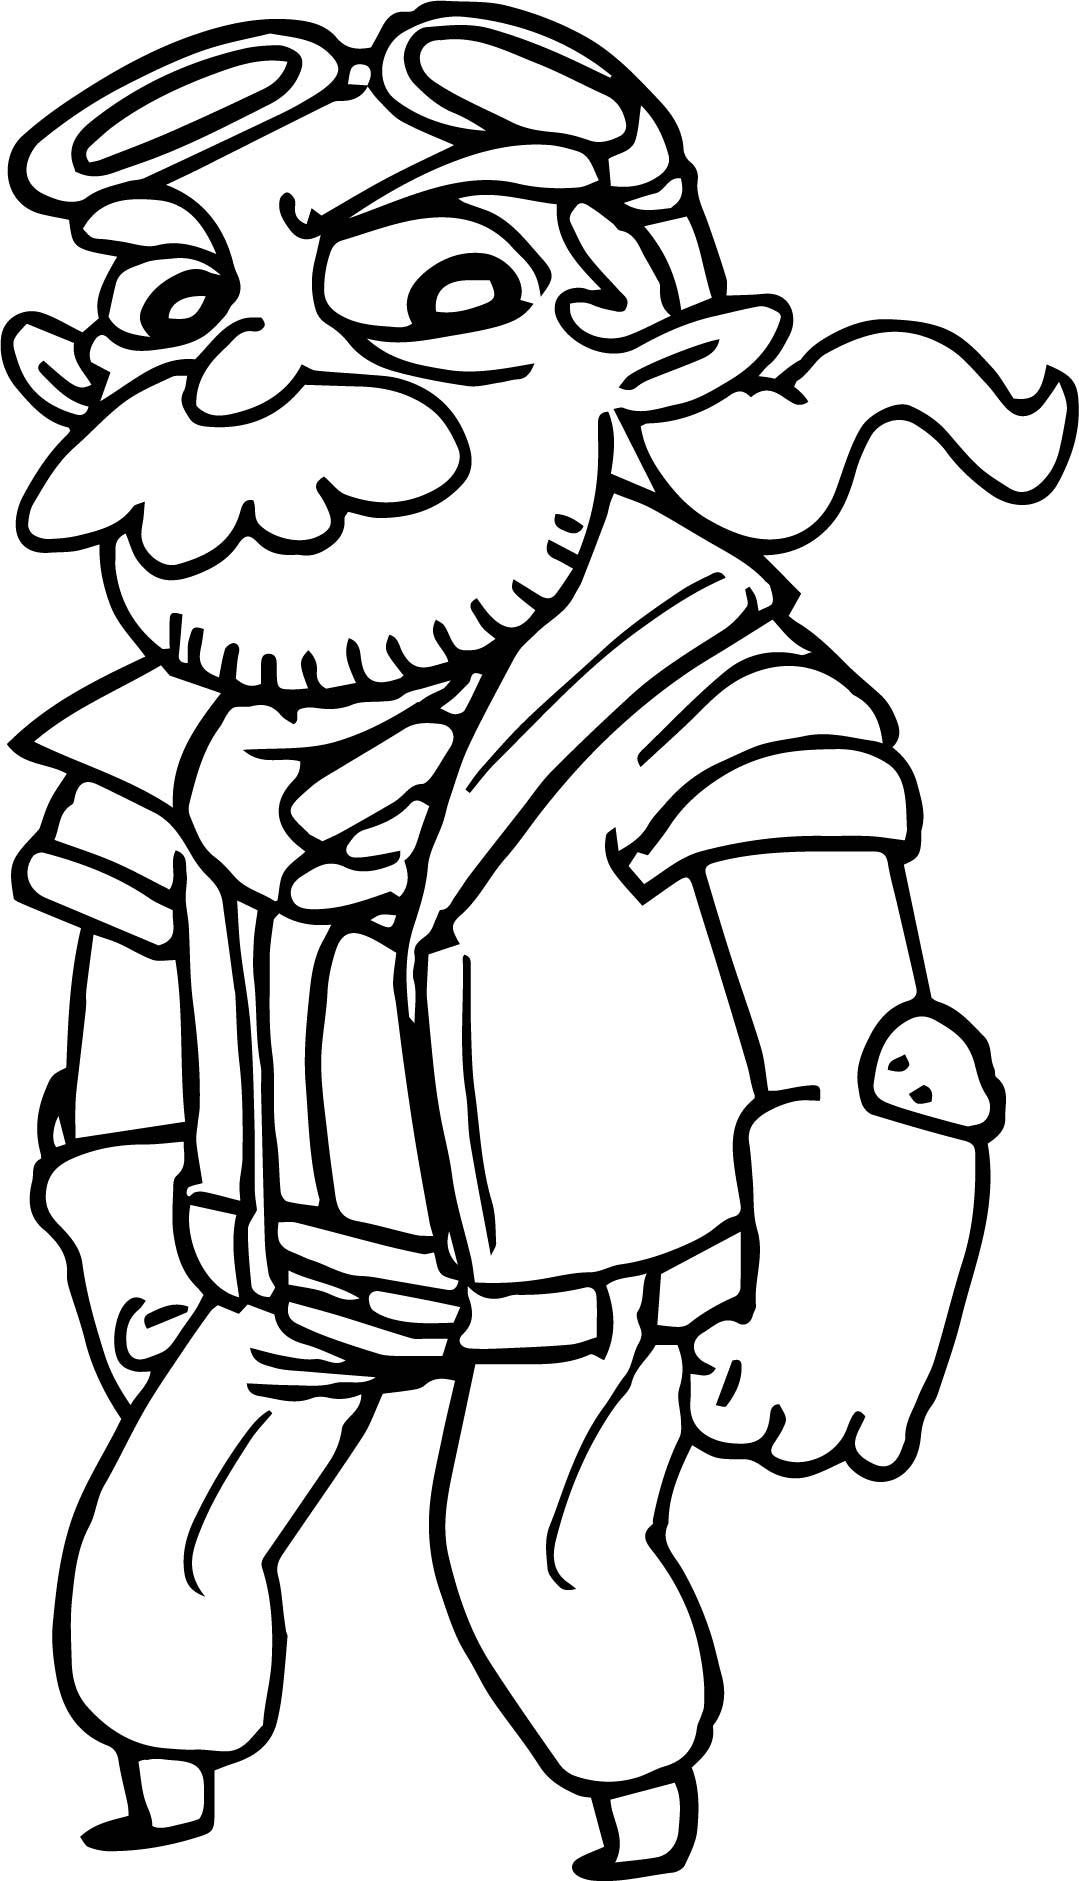 cartoon fantasy old wise mustache beard guy character coloring page - Mustache Coloring Pages